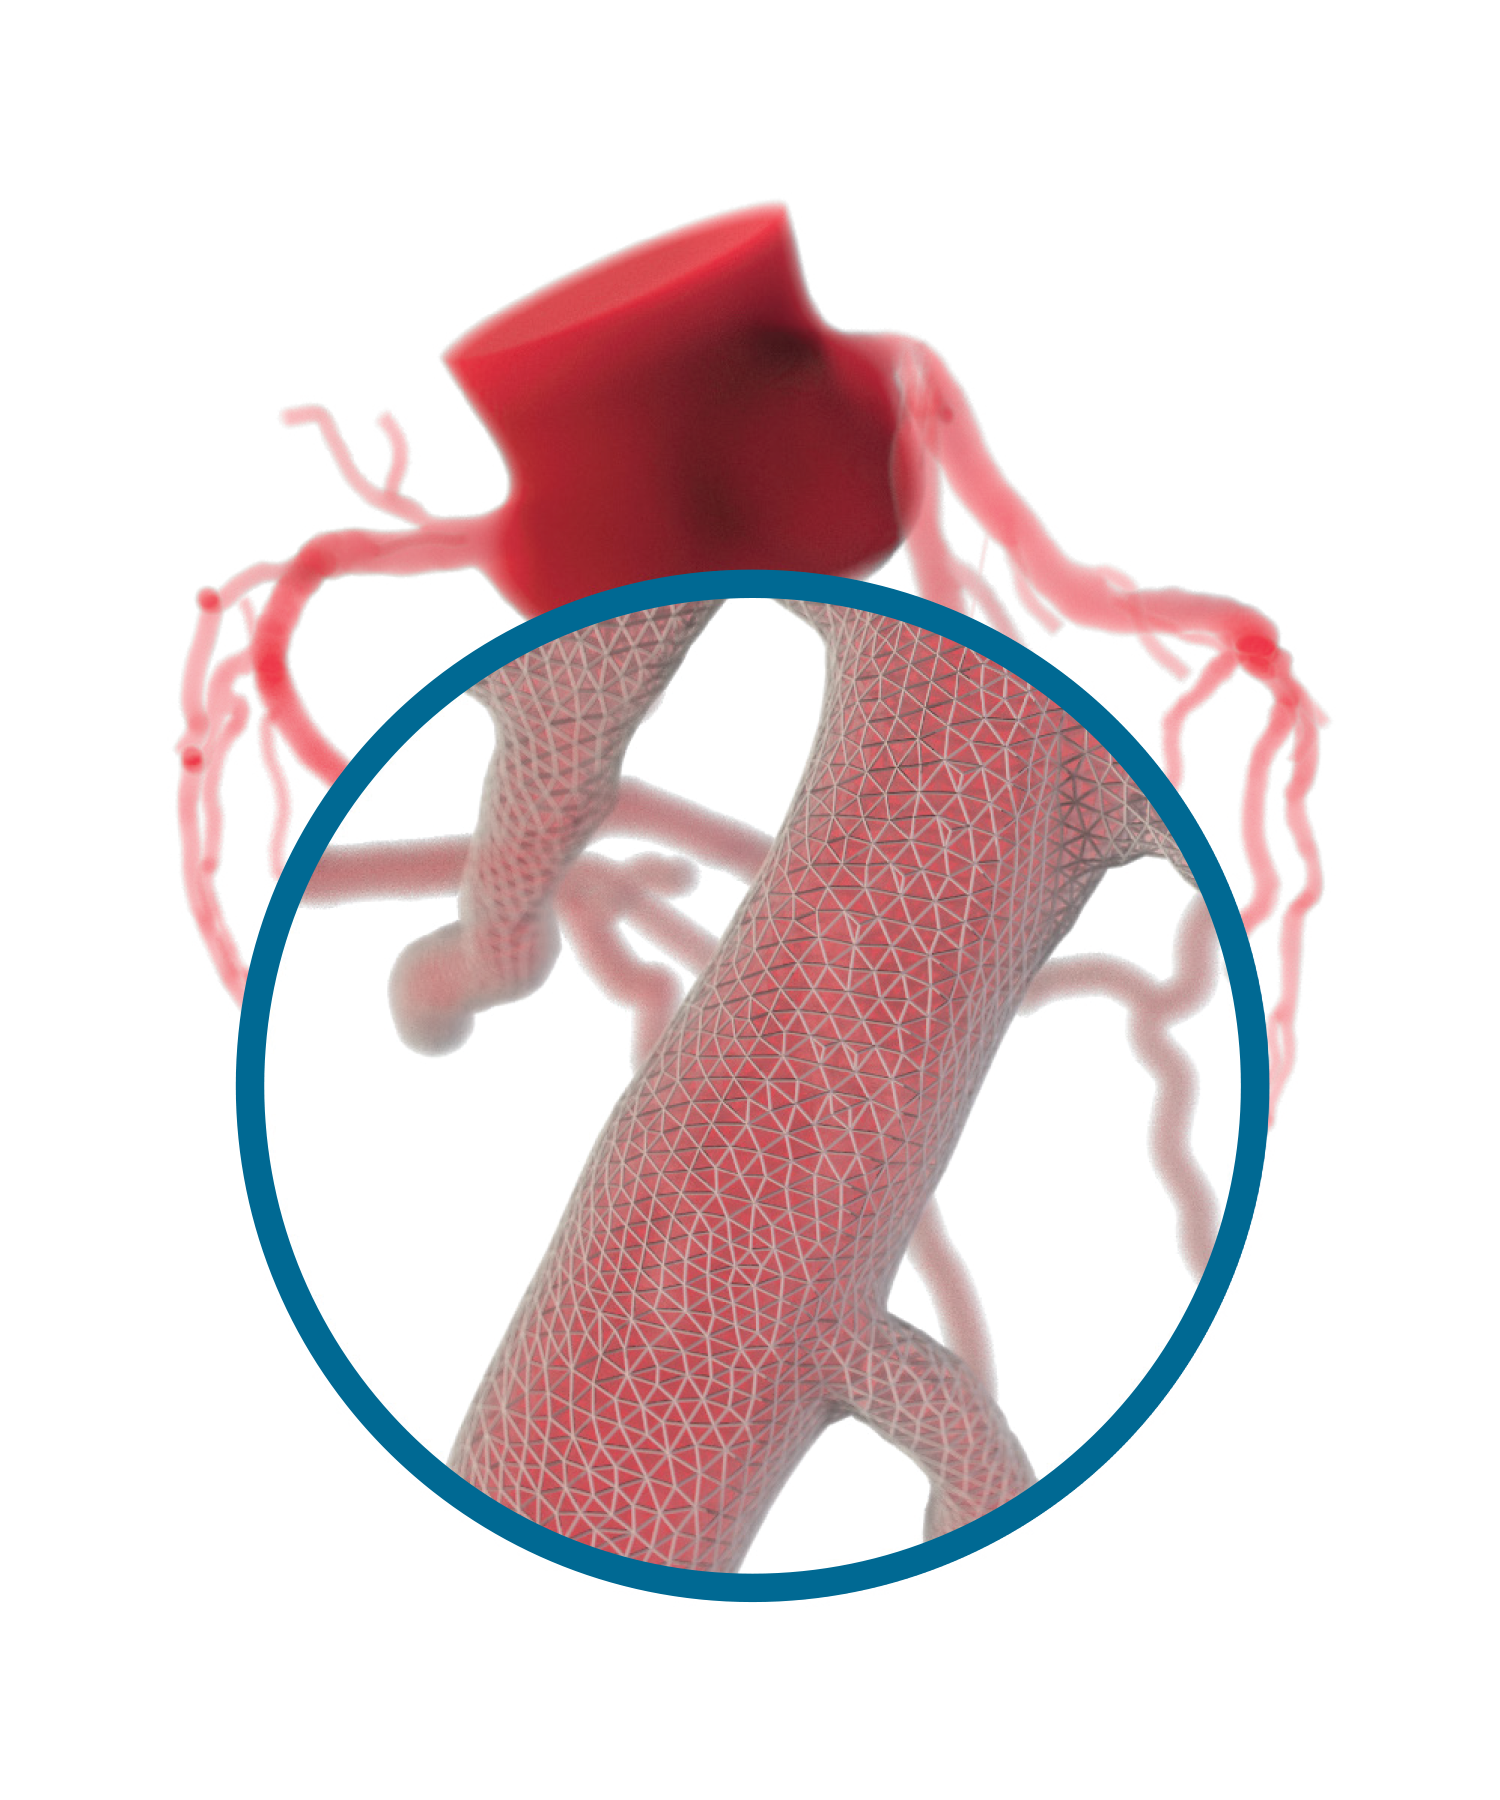 HeartFlow 3D Physicological Assessment